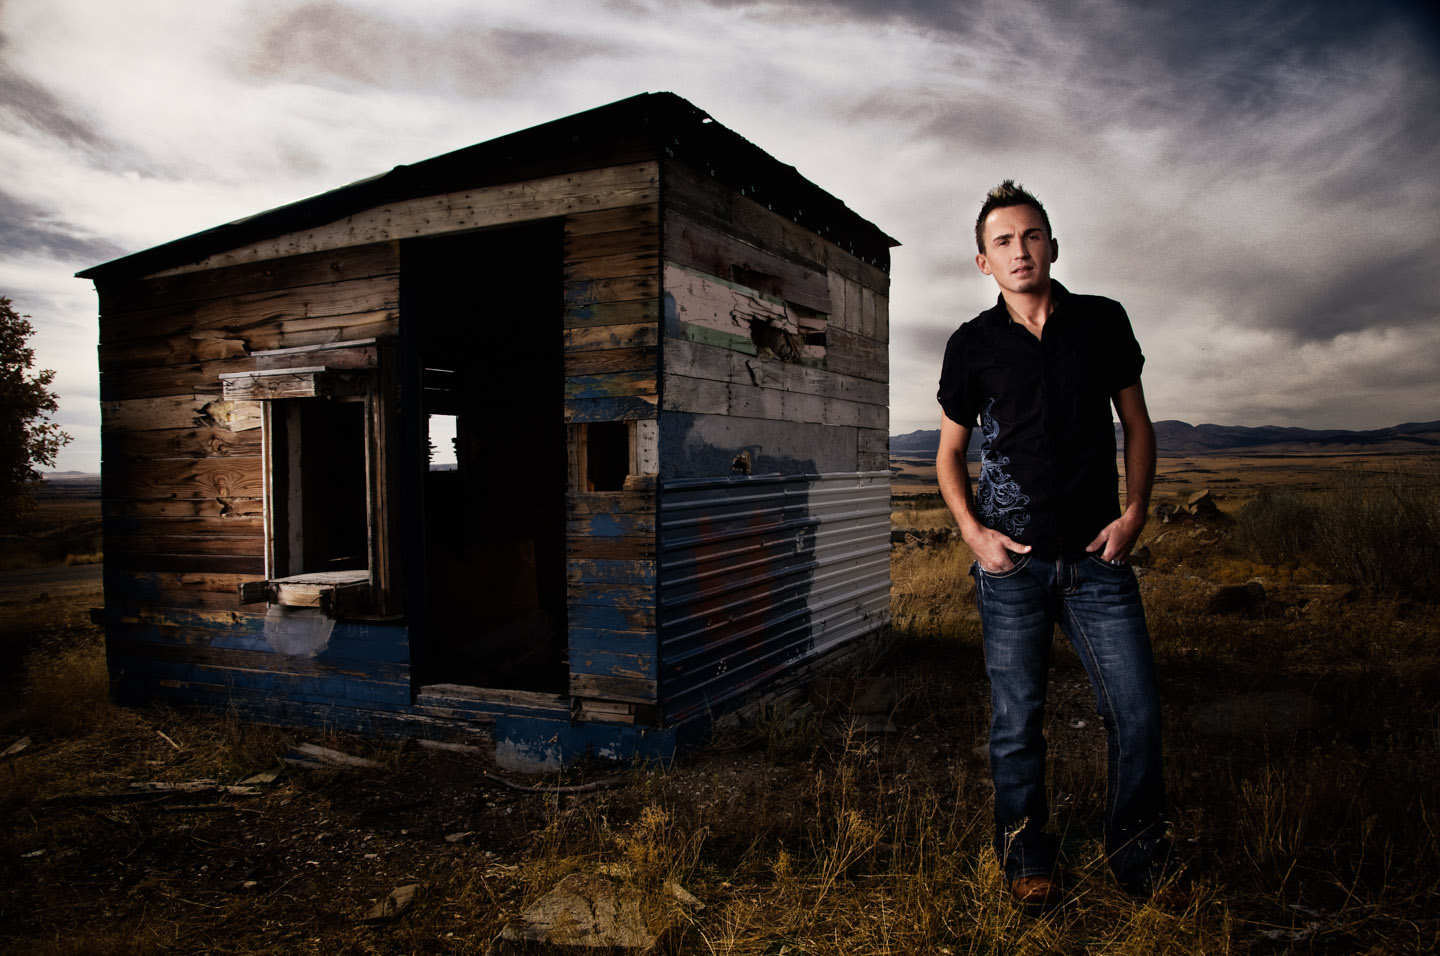 Stephen stands at a mini house at a ghost town